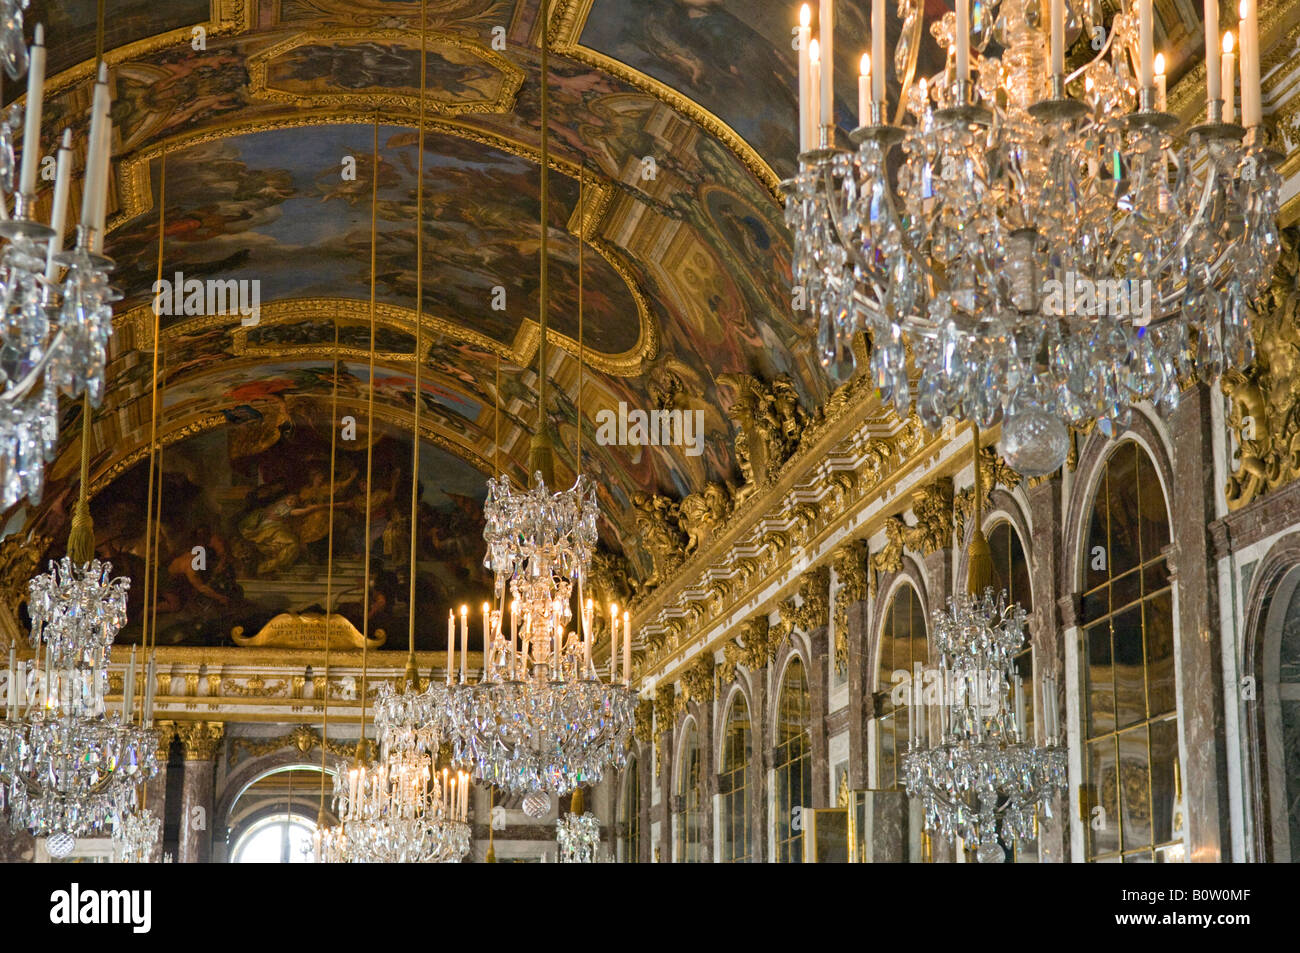 Chandeliers in the hall of mirrors palace of versailles or chandeliers in the hall of mirrors palace of versailles or chteau de versailles france aloadofball Gallery